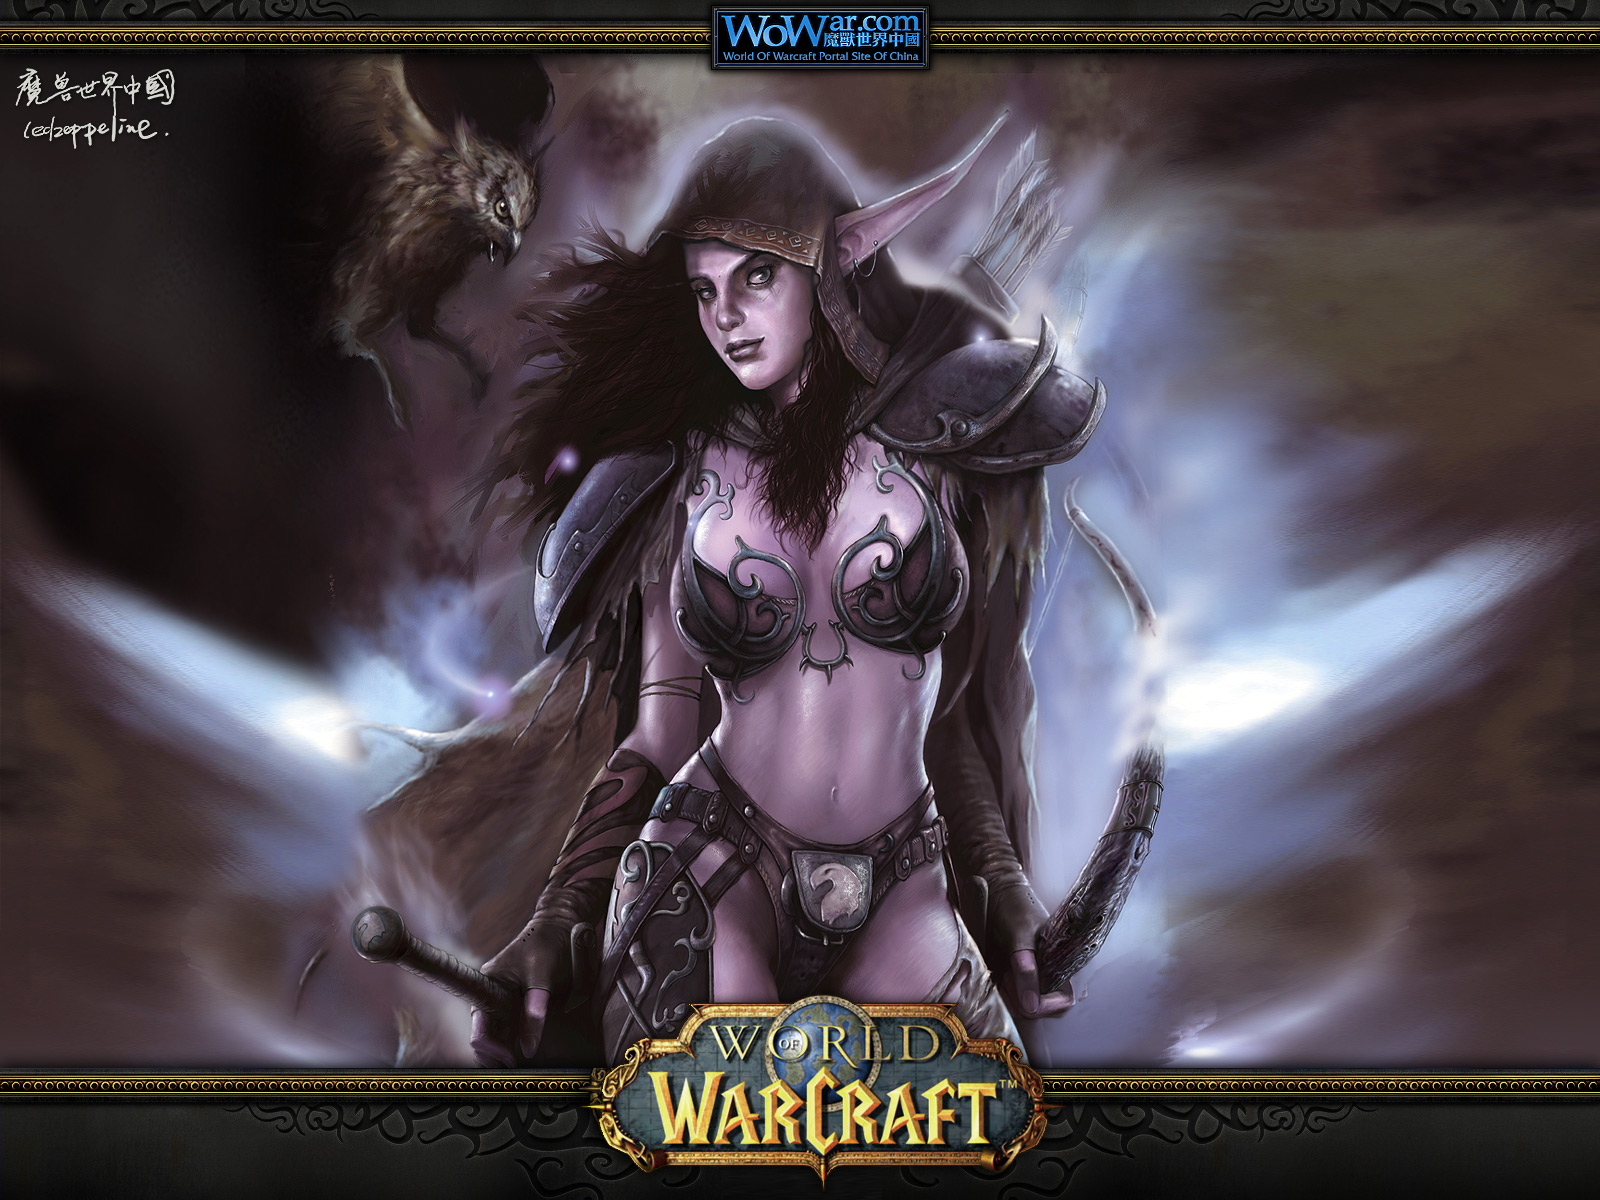 Elf warrior impregnate game erotic thumbs